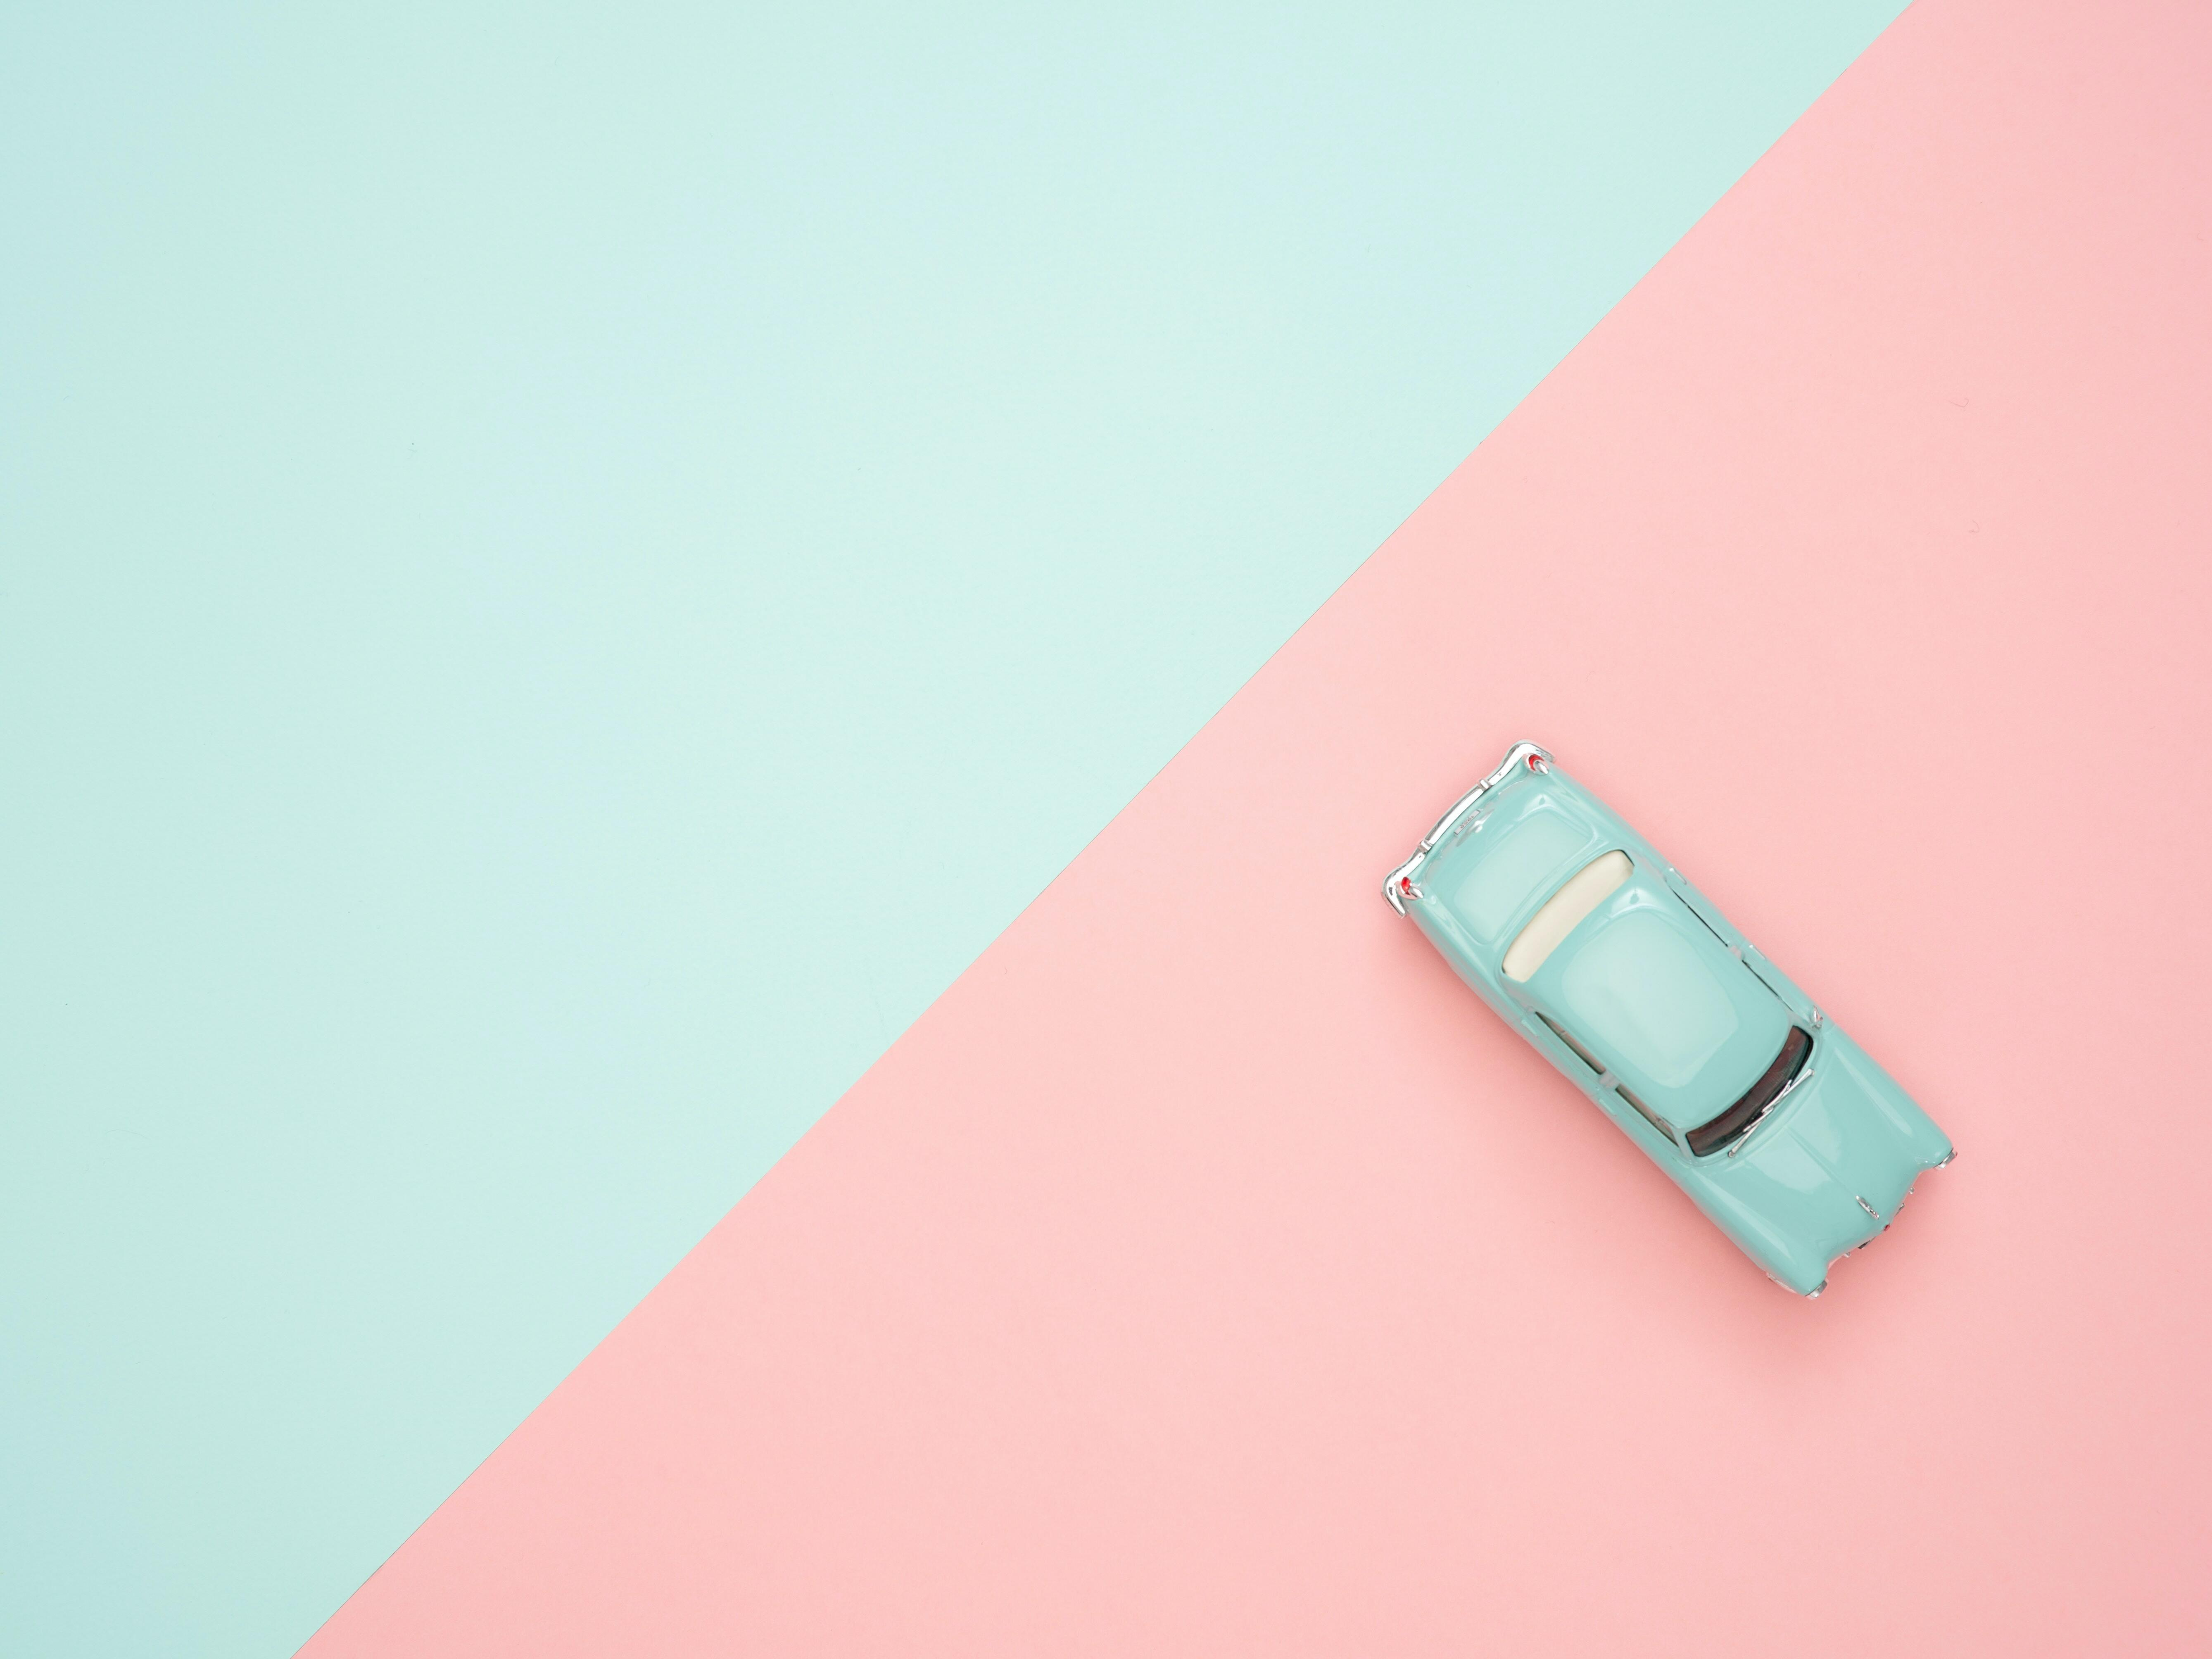 blue car parked in pink and blue spot